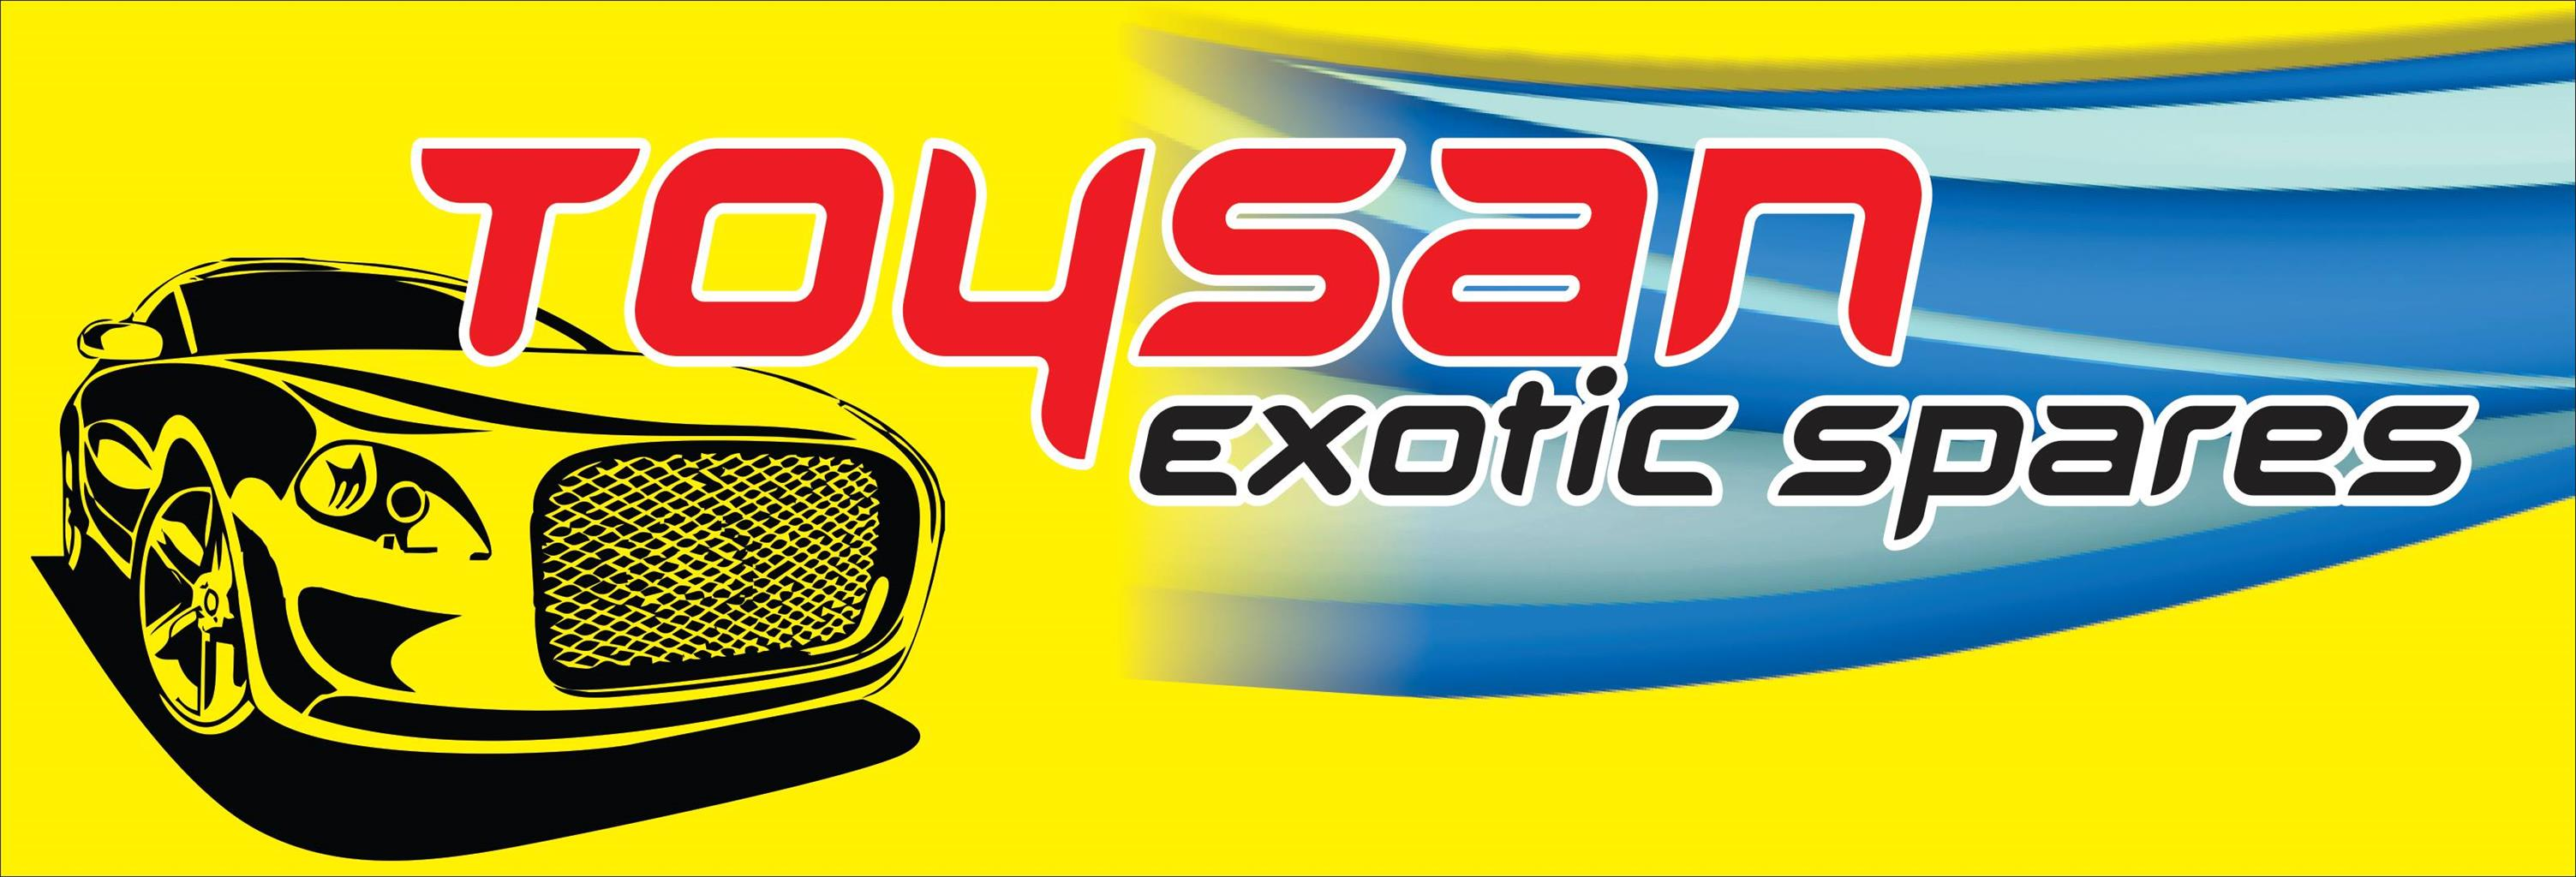 Find Toysan Exotic Spares's adverts listed on Junk Mail